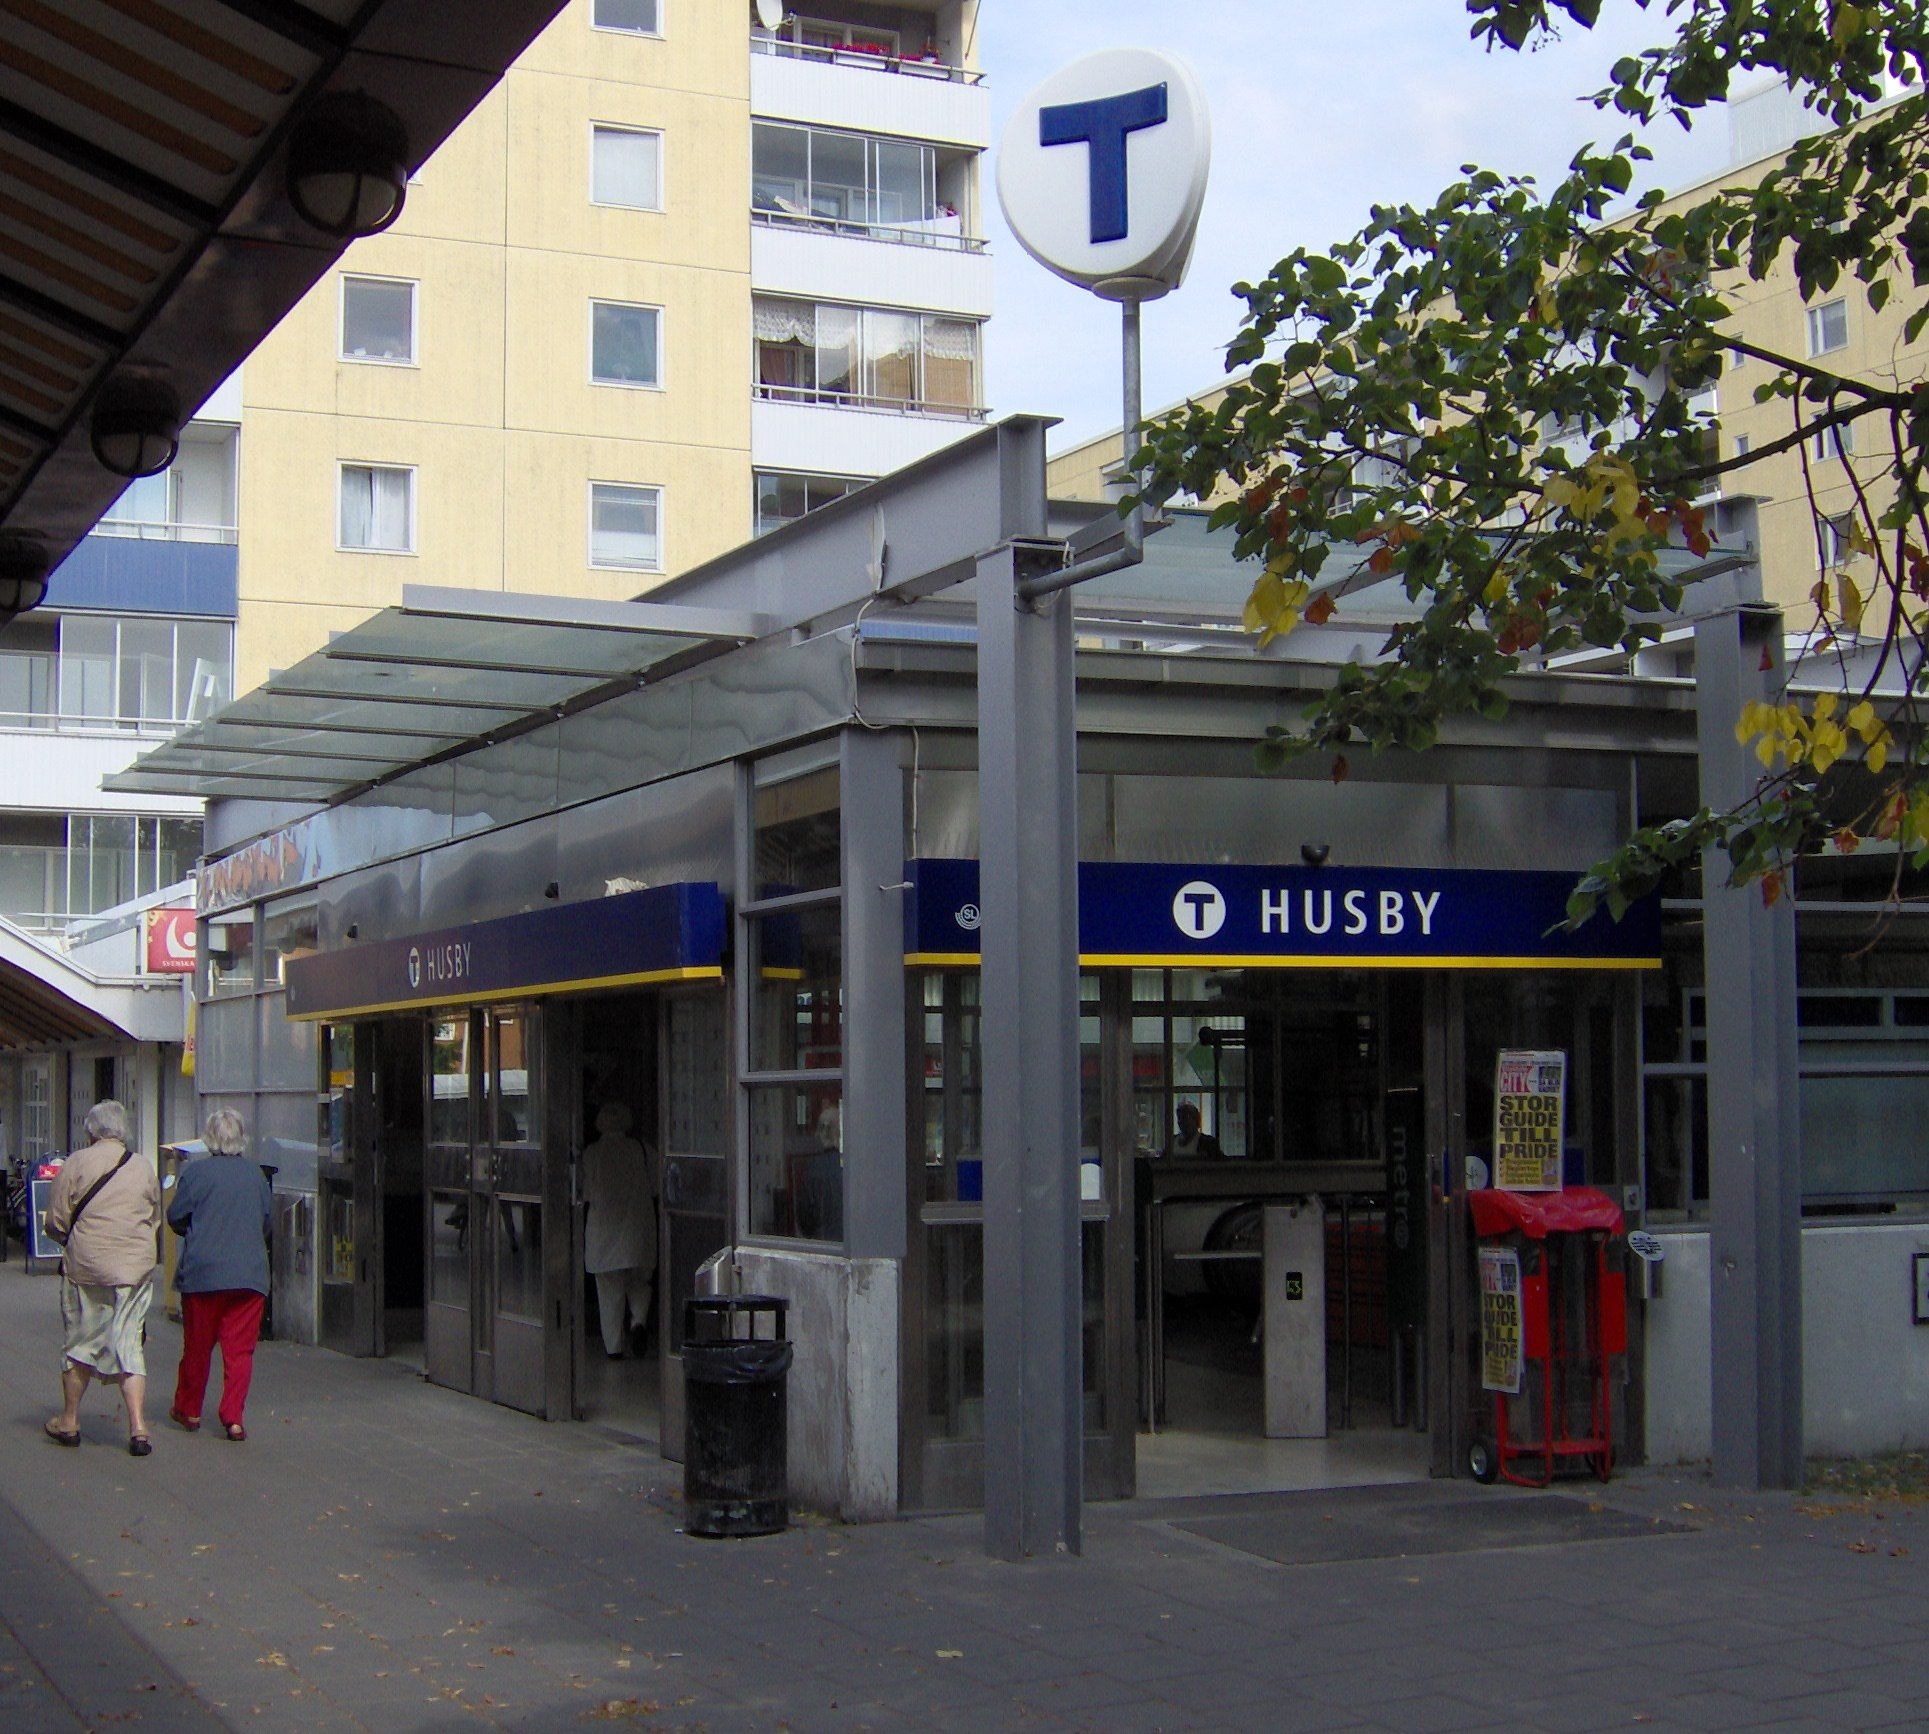 Subway Station of Husby, Stockholm Suburbs, Wiki Commons